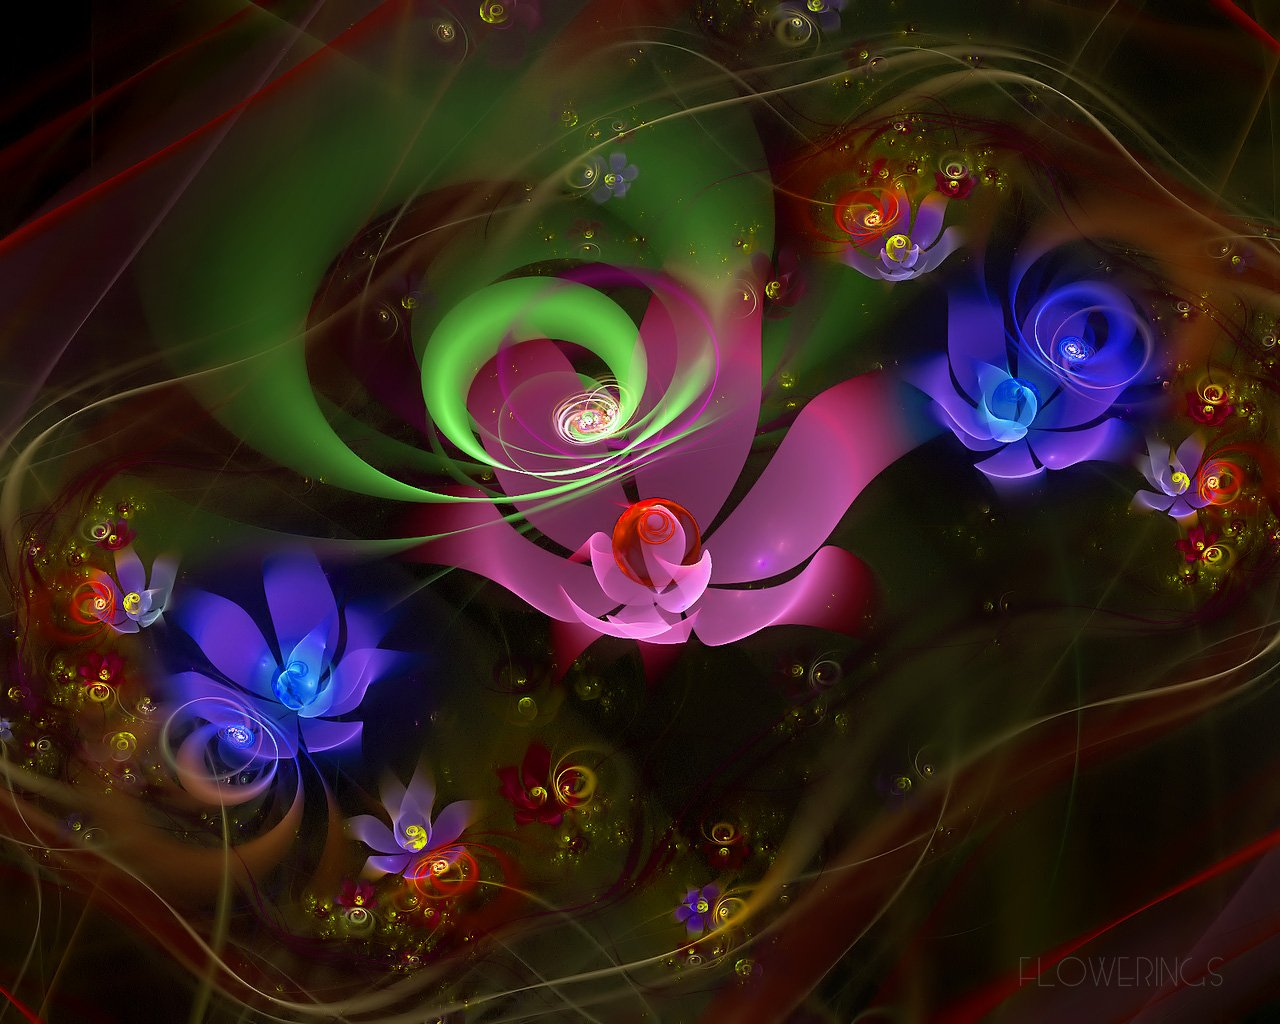 Free Colorful Flower Wallpaper Downloads: Free 3D Colorful Flowers Wallpaper